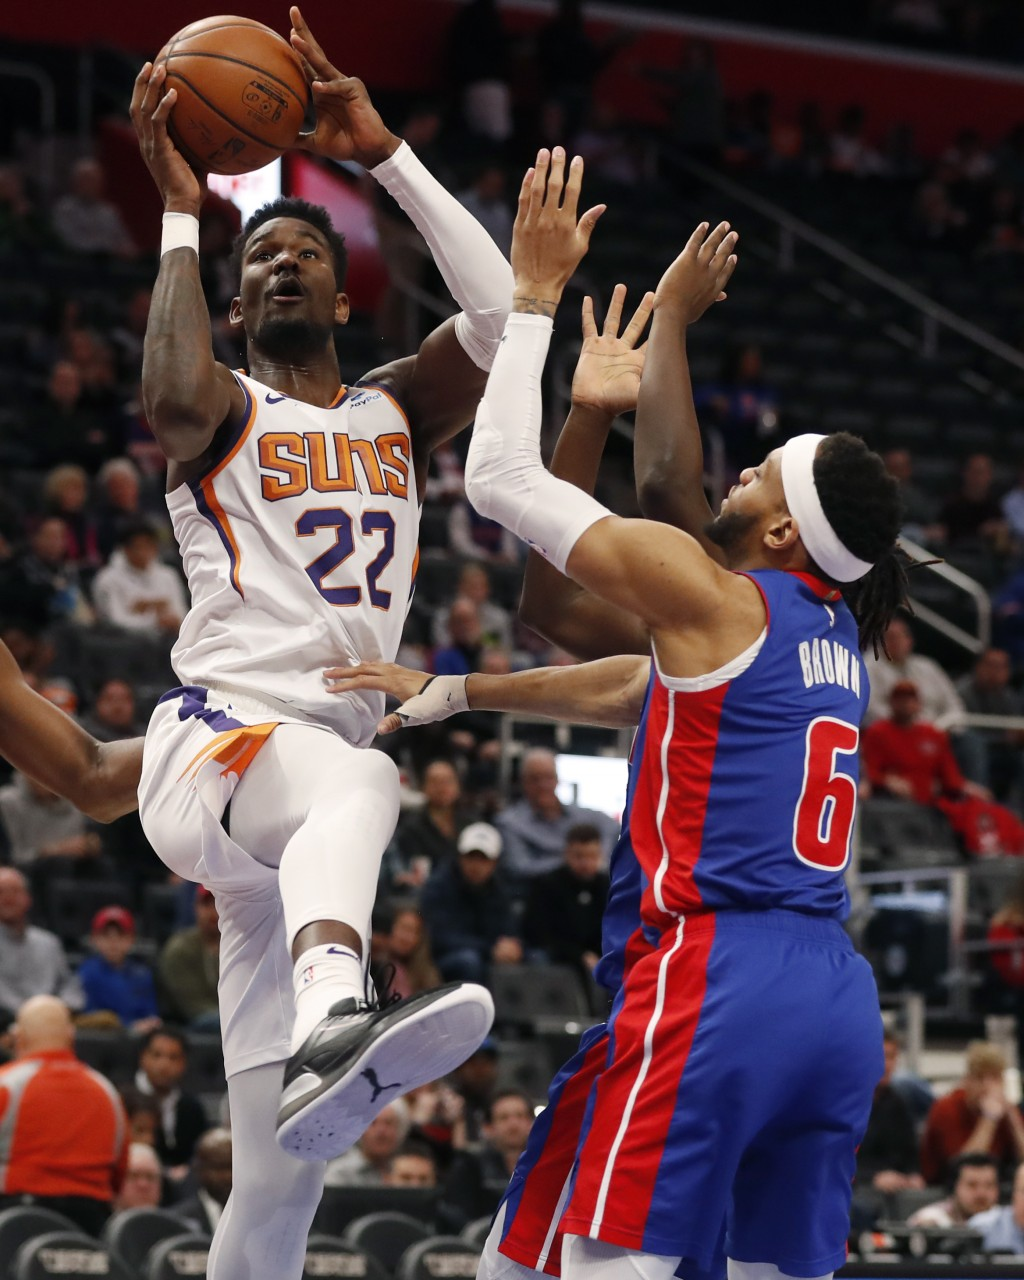 Phoenix Suns center Deandre Ayton (22) shoots over Detroit Pistons guard Bruce Brown (6) during the first half of an NBA basketball game, Wednesday, F...